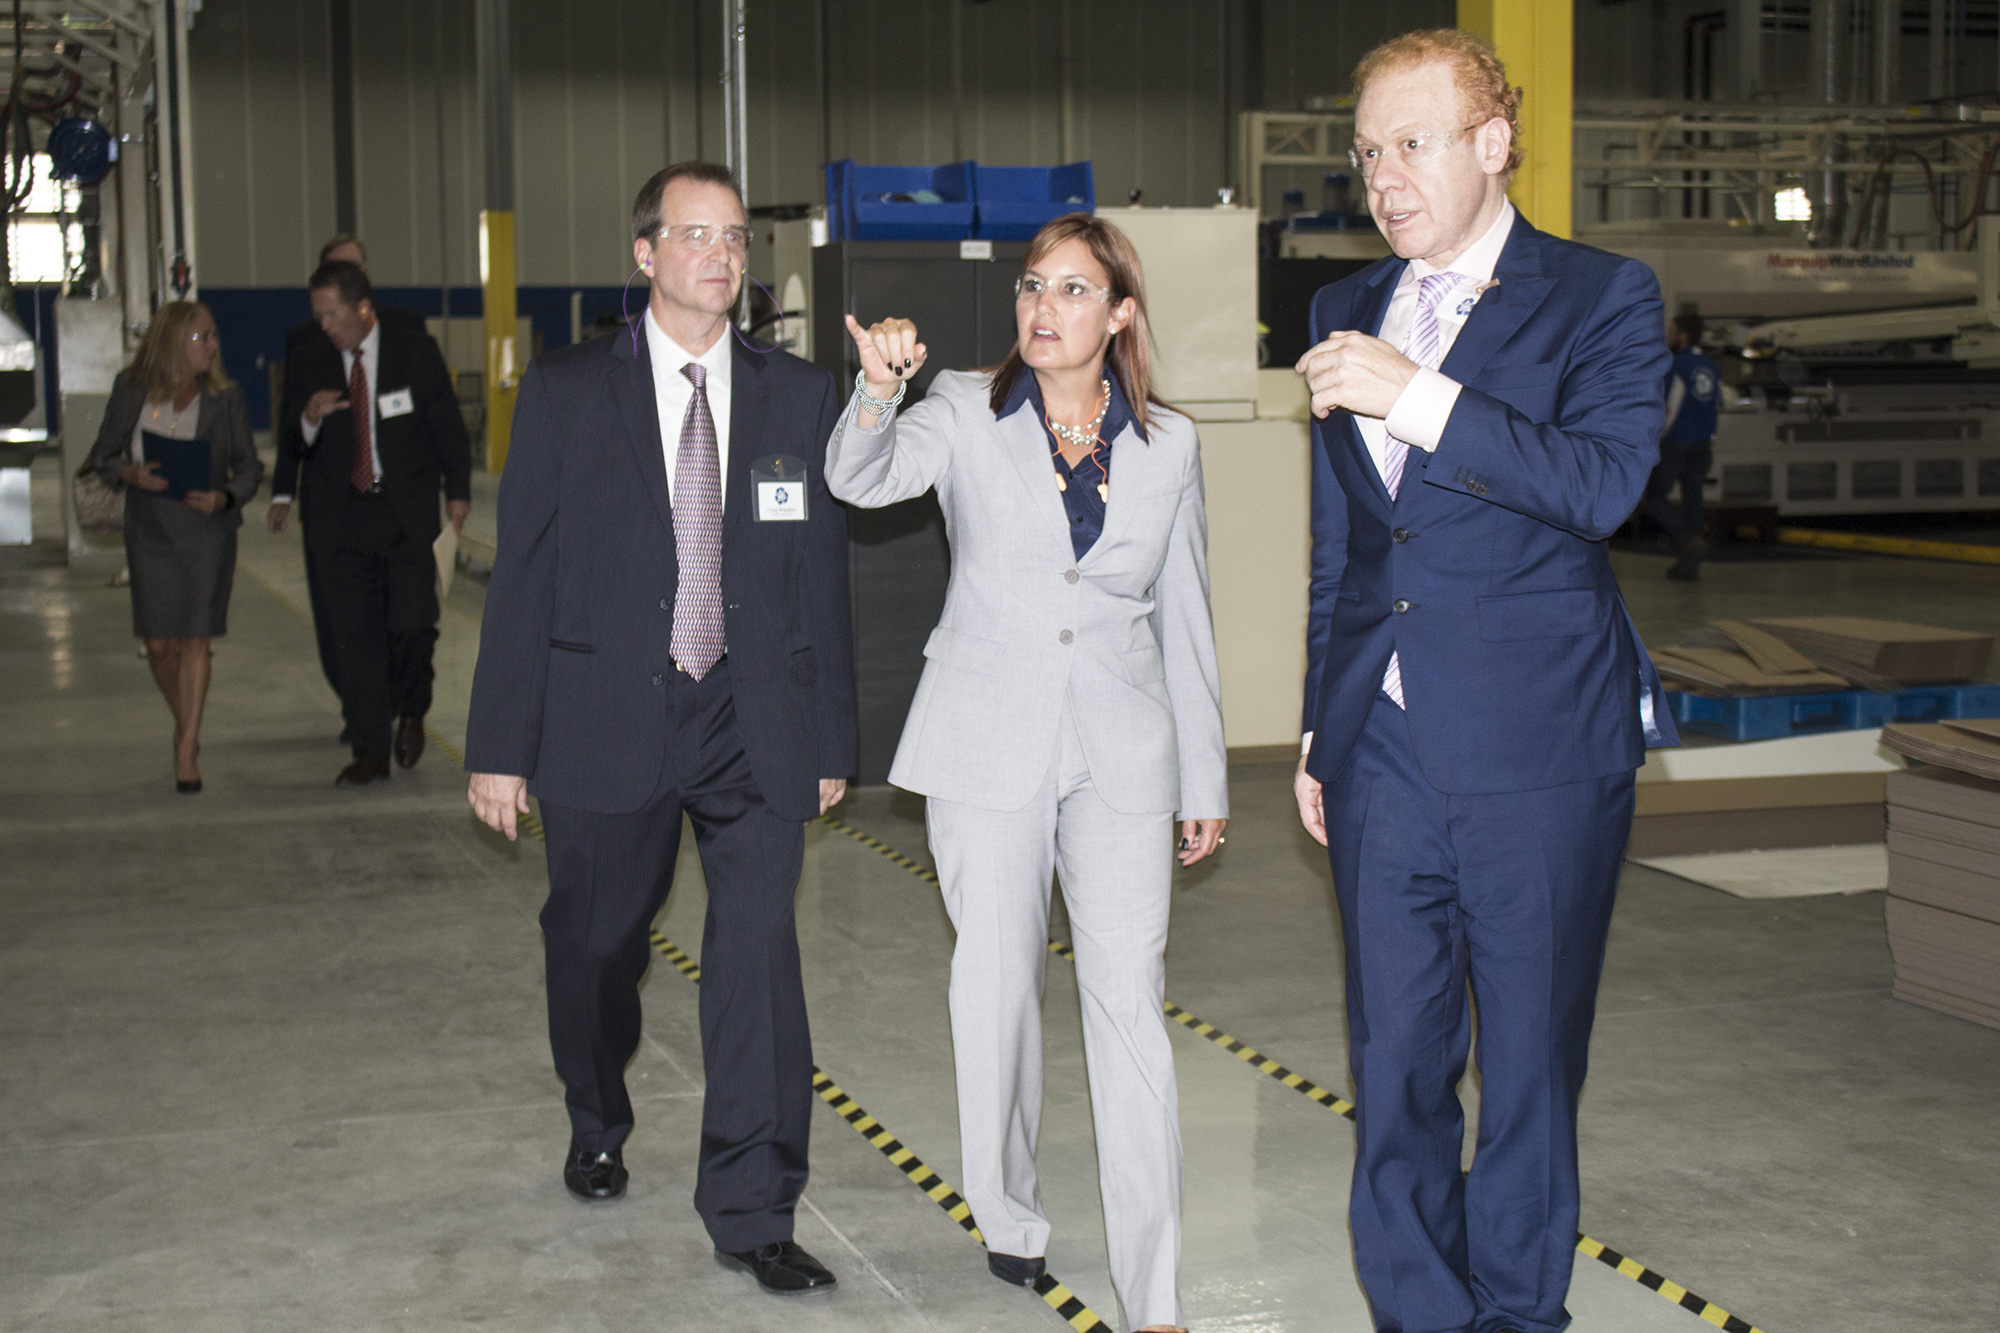 Company chairman Anthony Pratt shows Ohio Lt. Governor Mary Taylor around the new box making facility. They are joined by plant GM Craig Beaudoin.